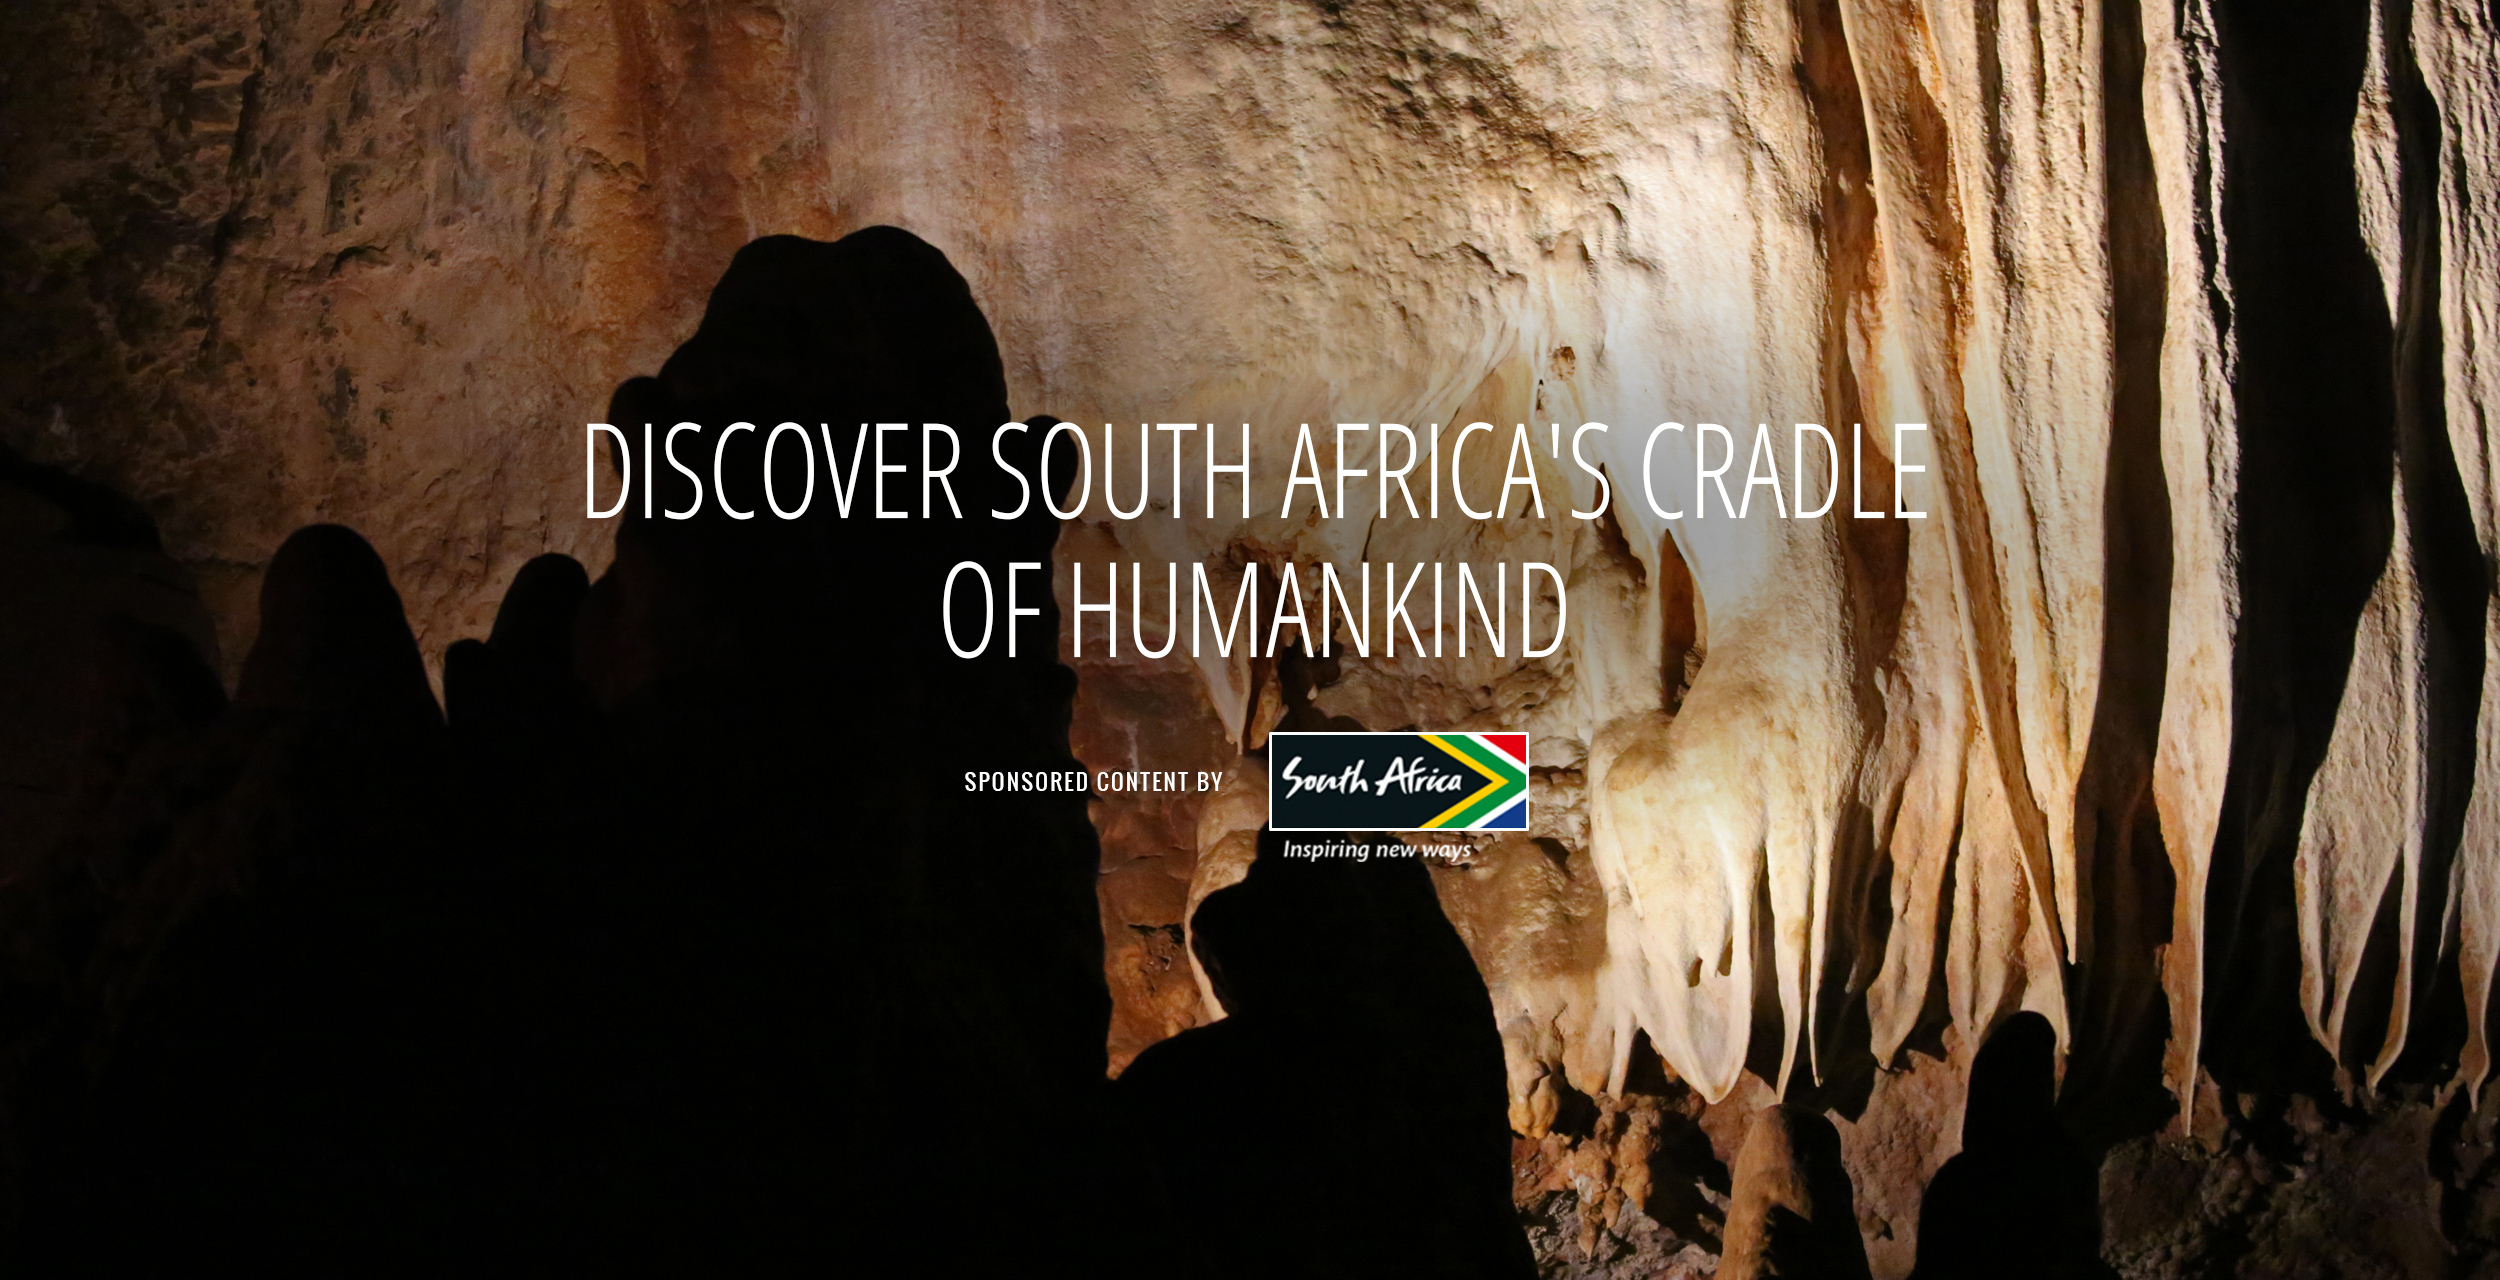 Discover South Africau0027s Cradle of Humankind